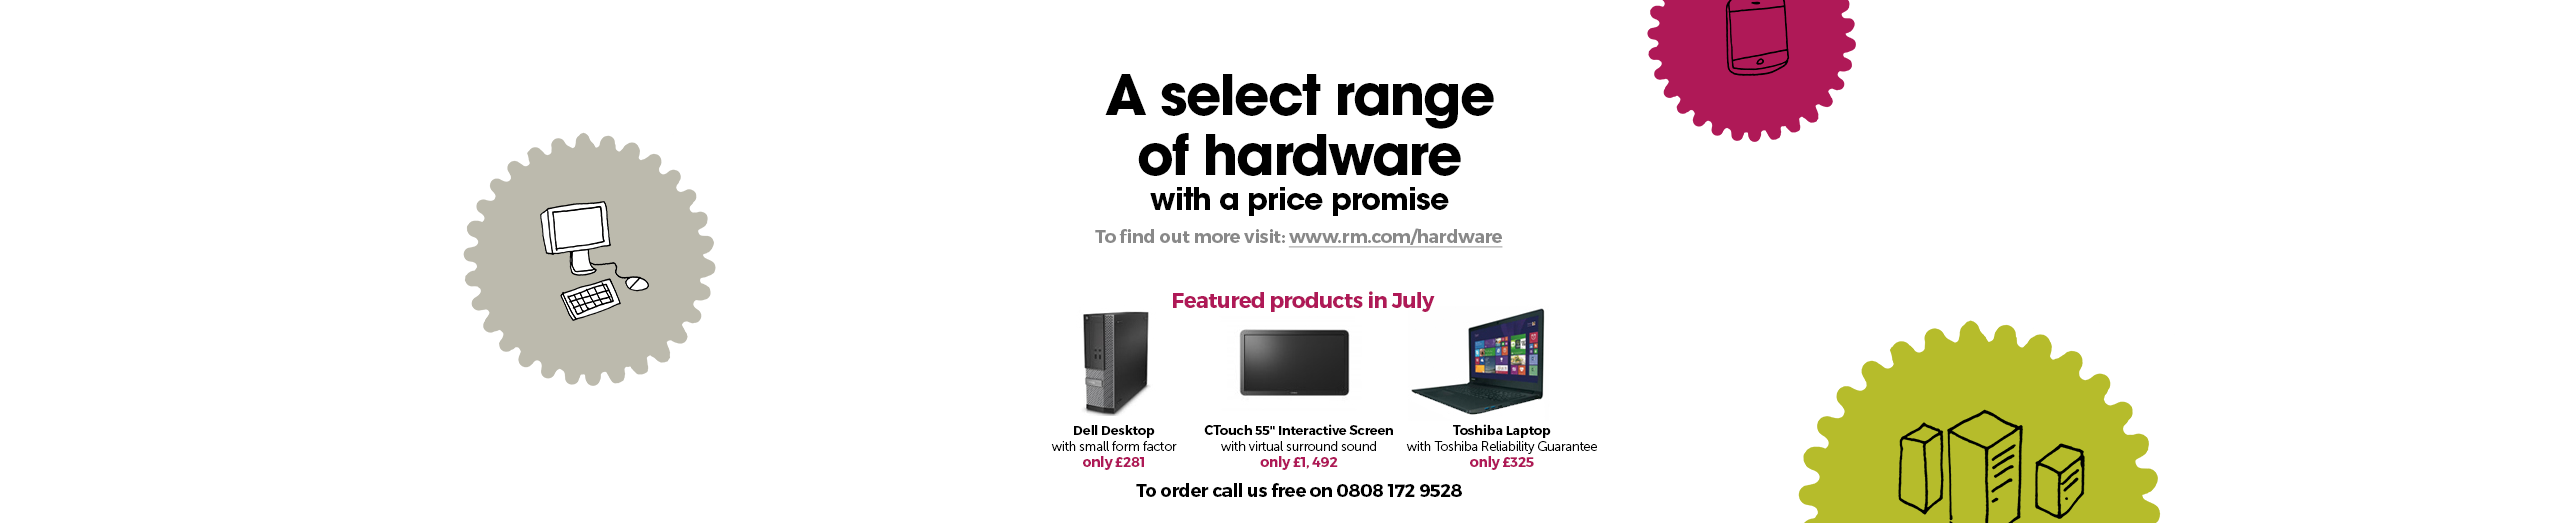 A select range of hardware with a price promise